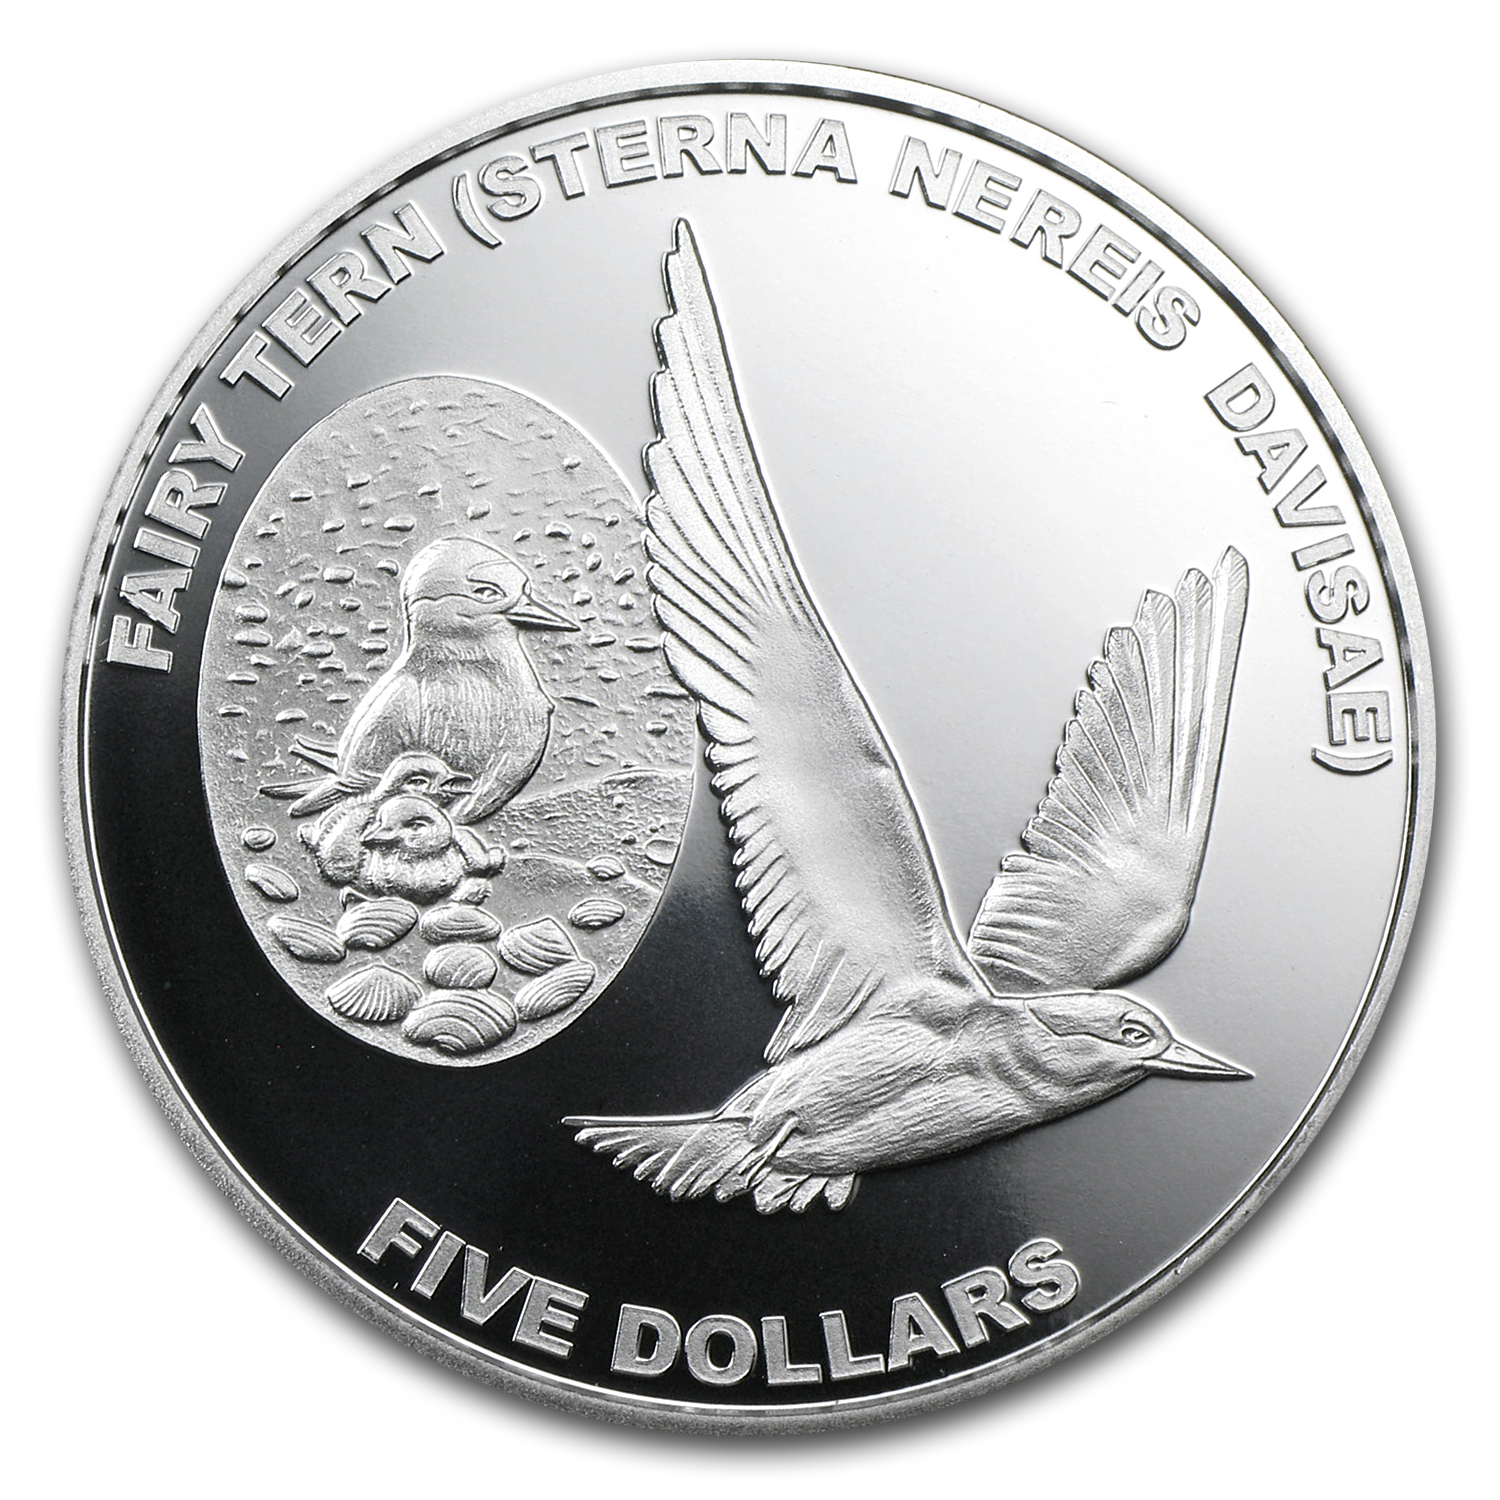 2012 New Zealand 1 oz Silver $5 Annual Coin Fairy Tern Proof